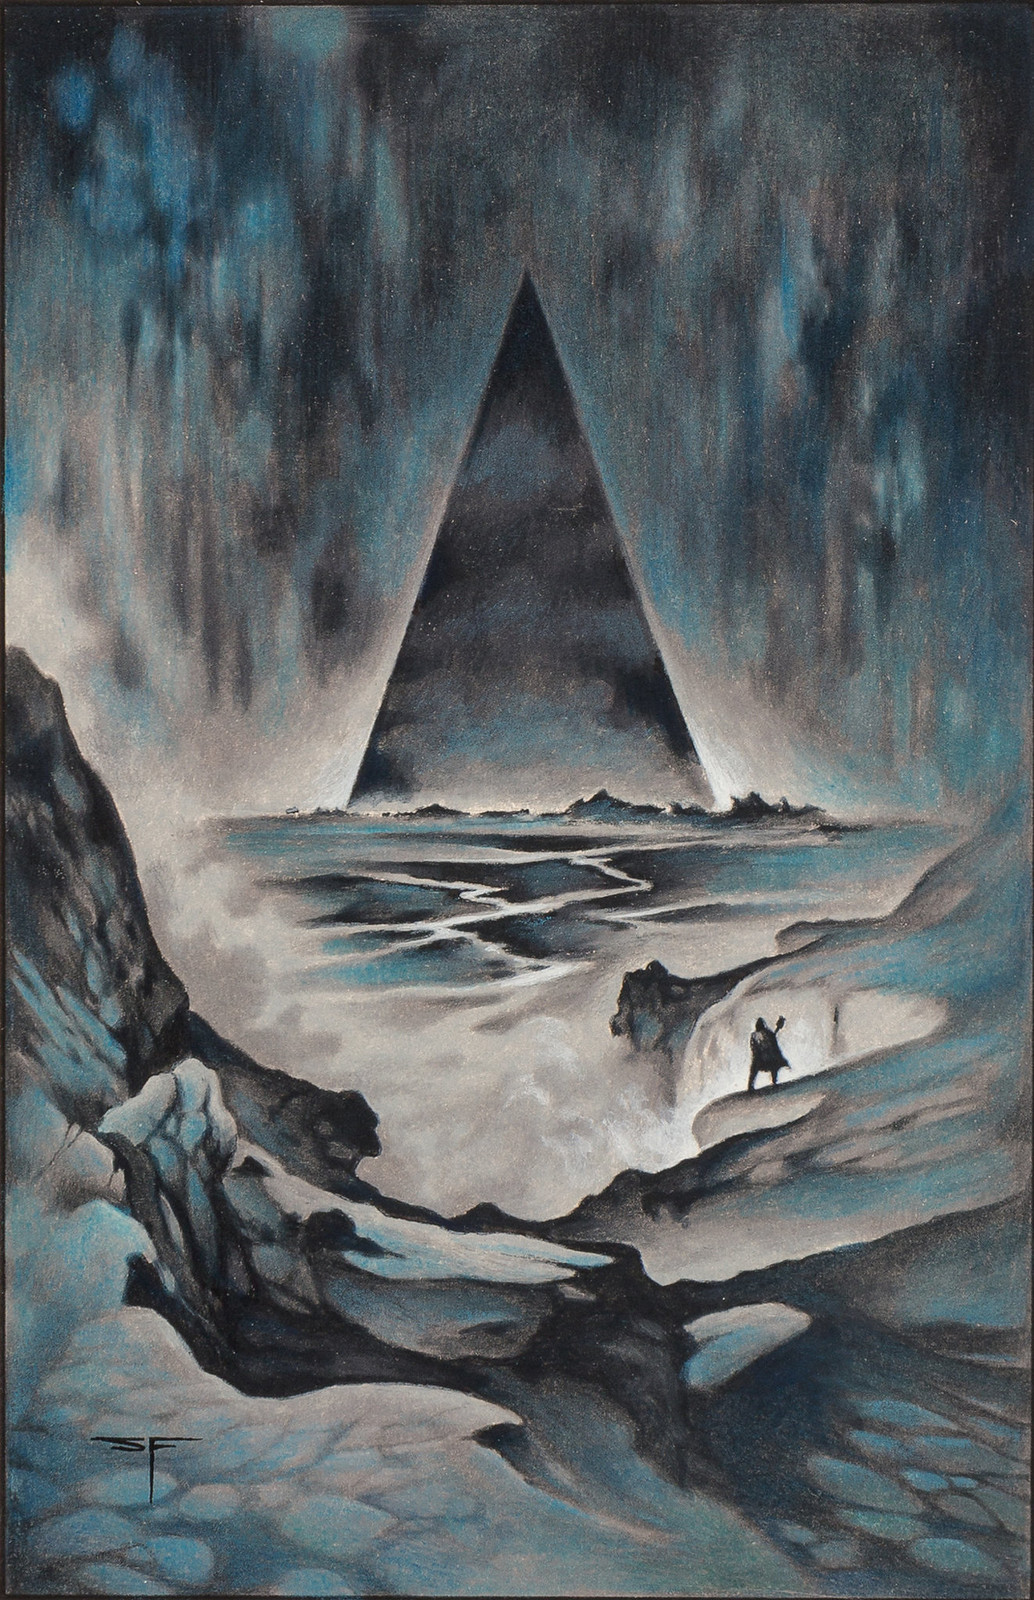 Stephen Fabian - The Dream of X - The Lesser Redoubt, 1977